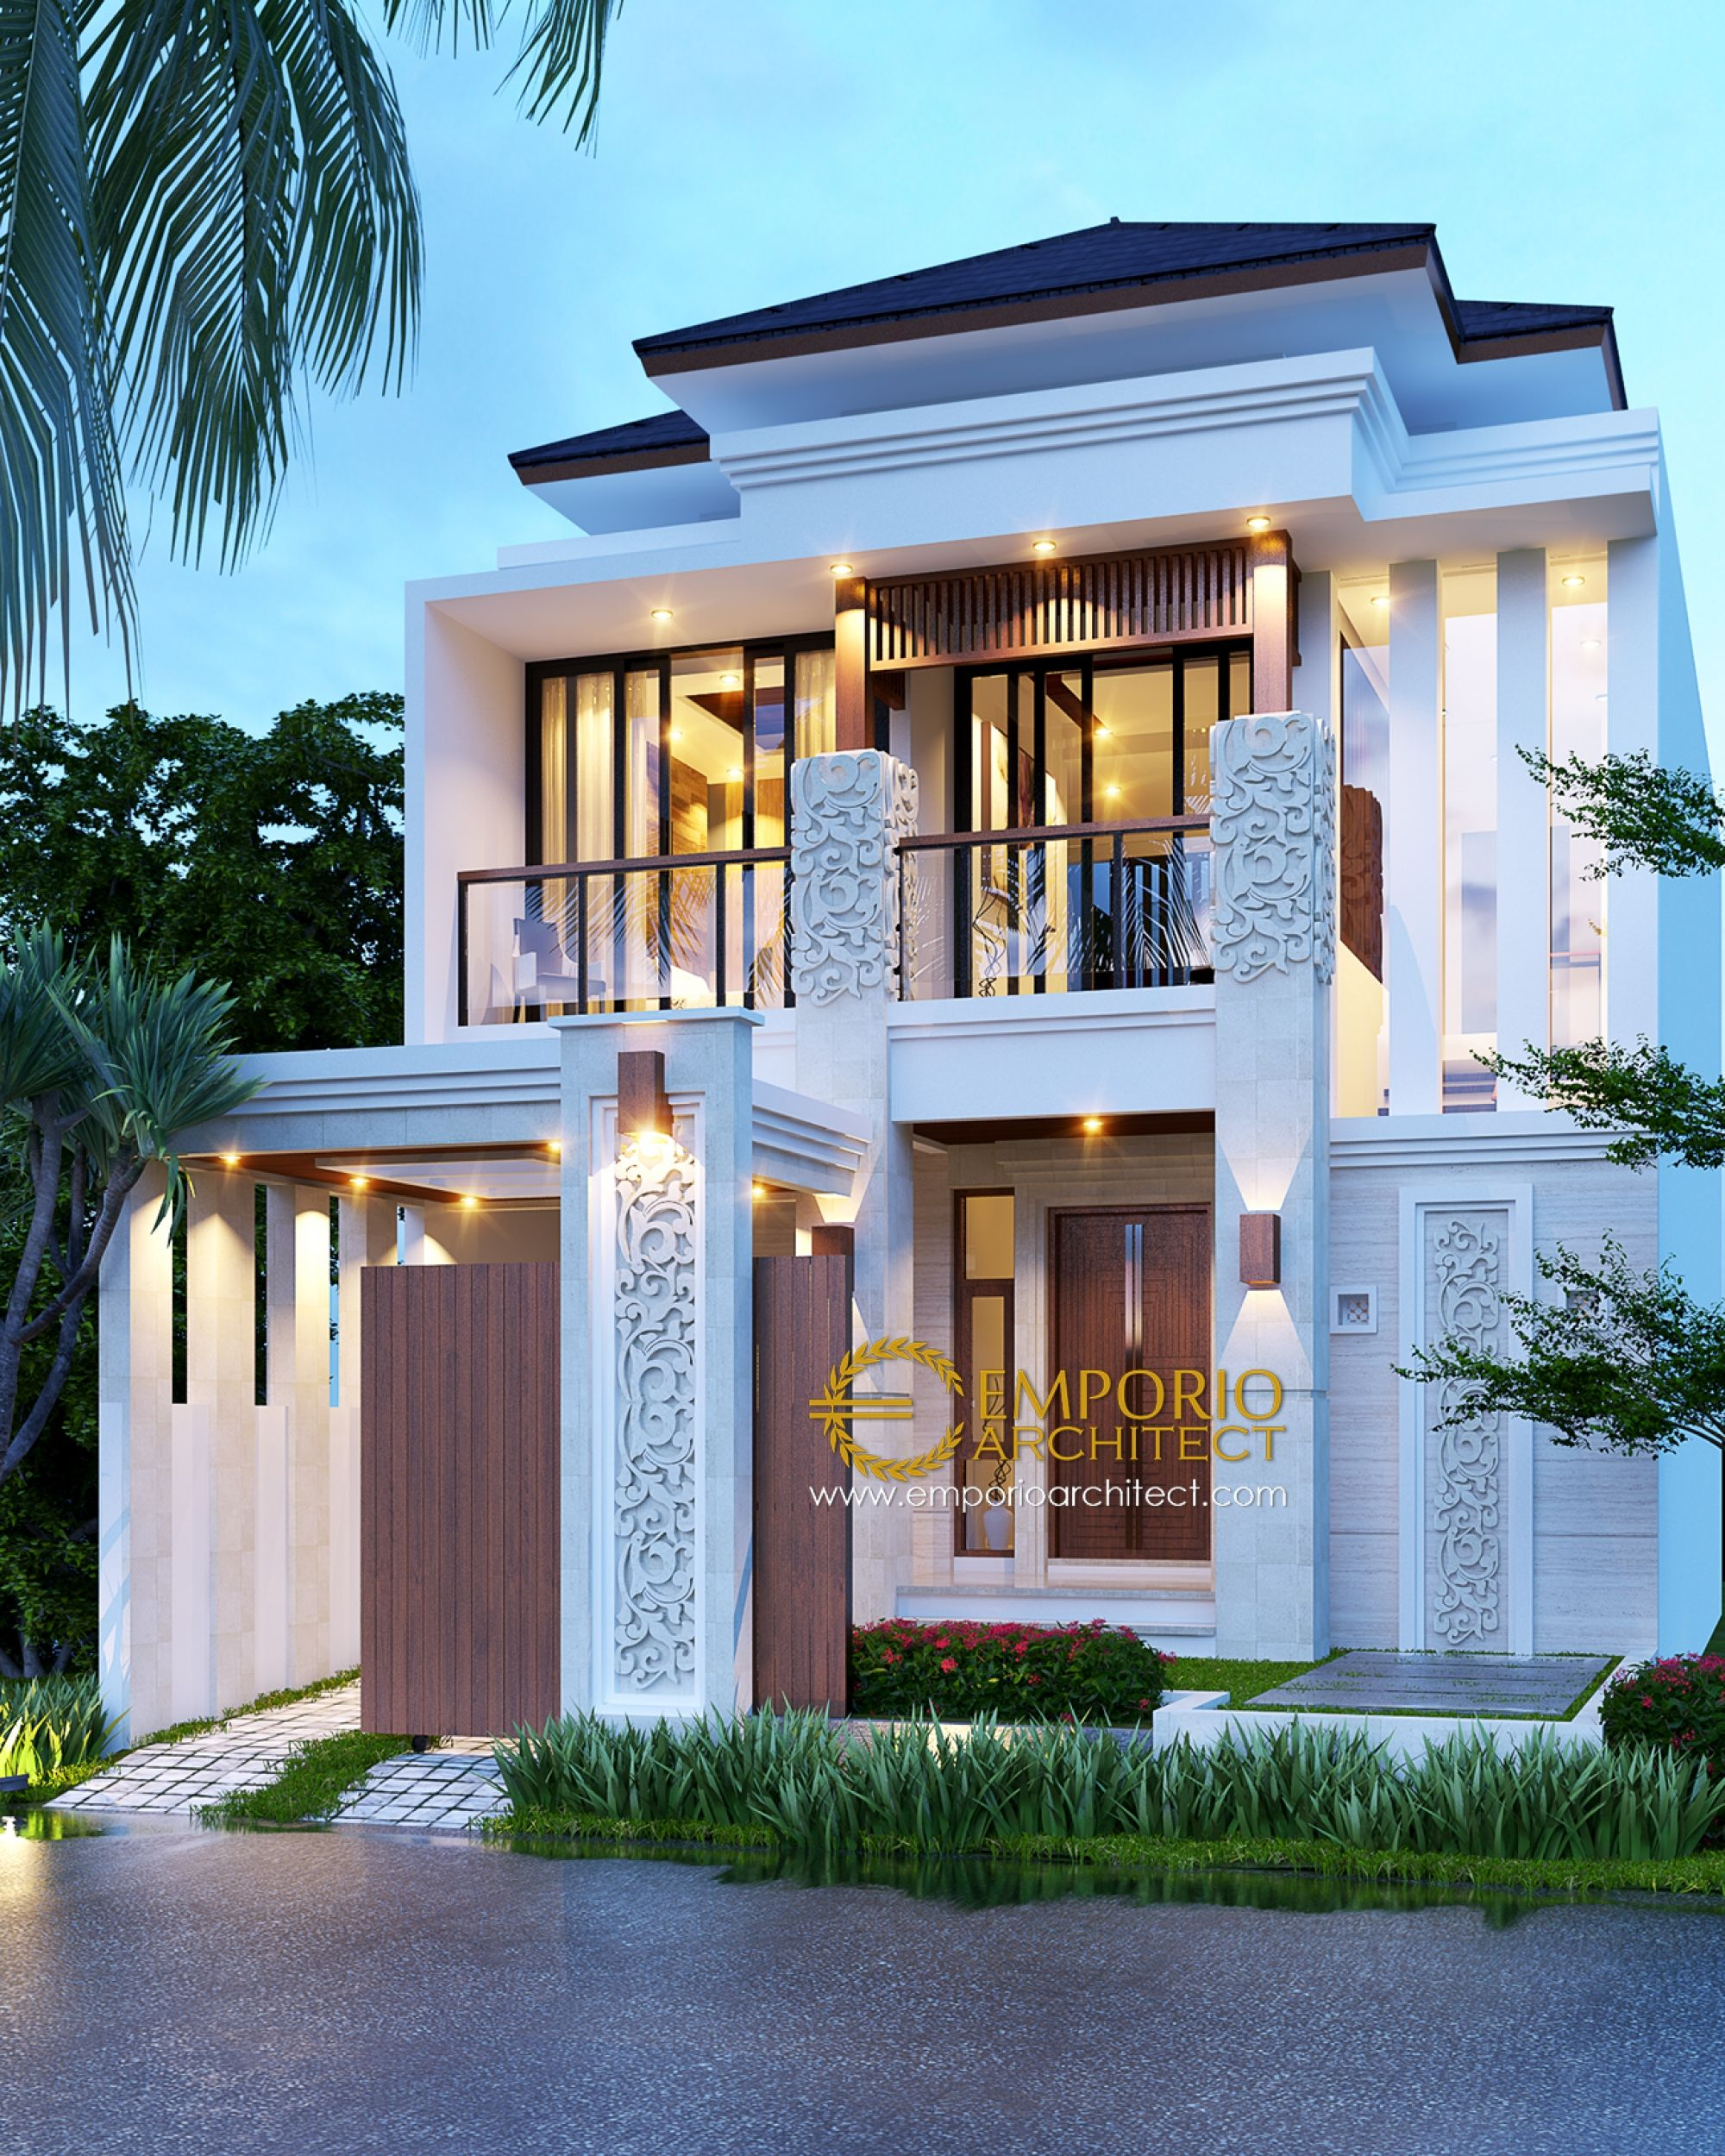 Jasa arsitek jakarta desain rumah bapak riyanto berkualitas villa bali modern house designmodern also with  superior business you will always discover an ideal remedy rh pinterest